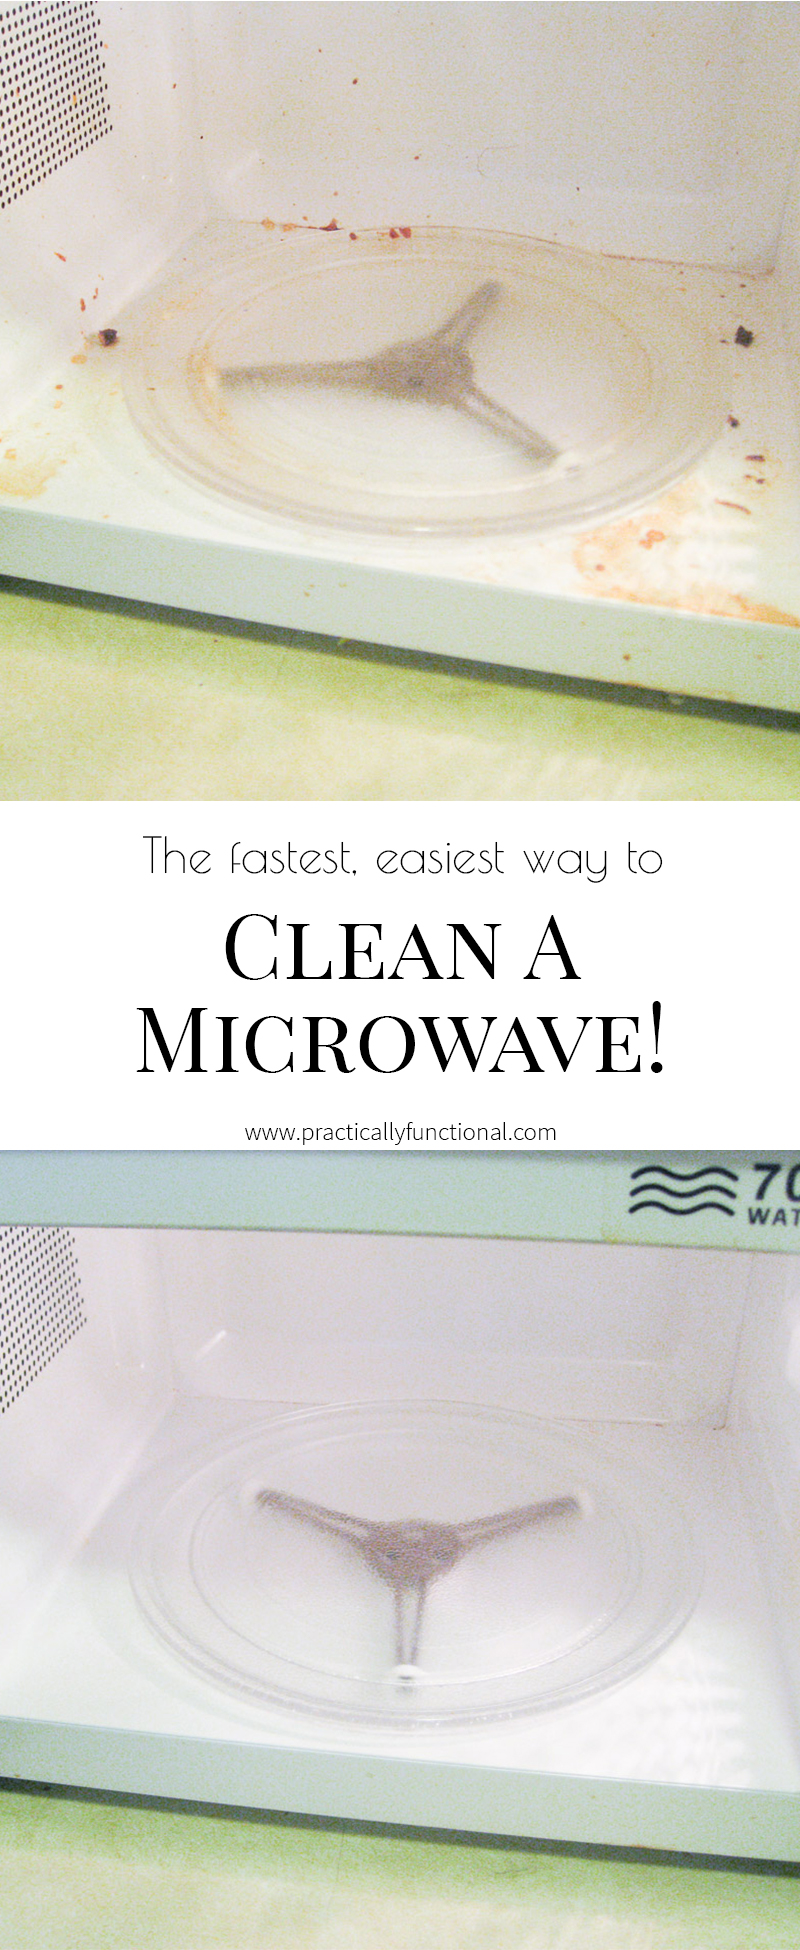 Clean a microwave in minutes! All you need is vinegar and water!